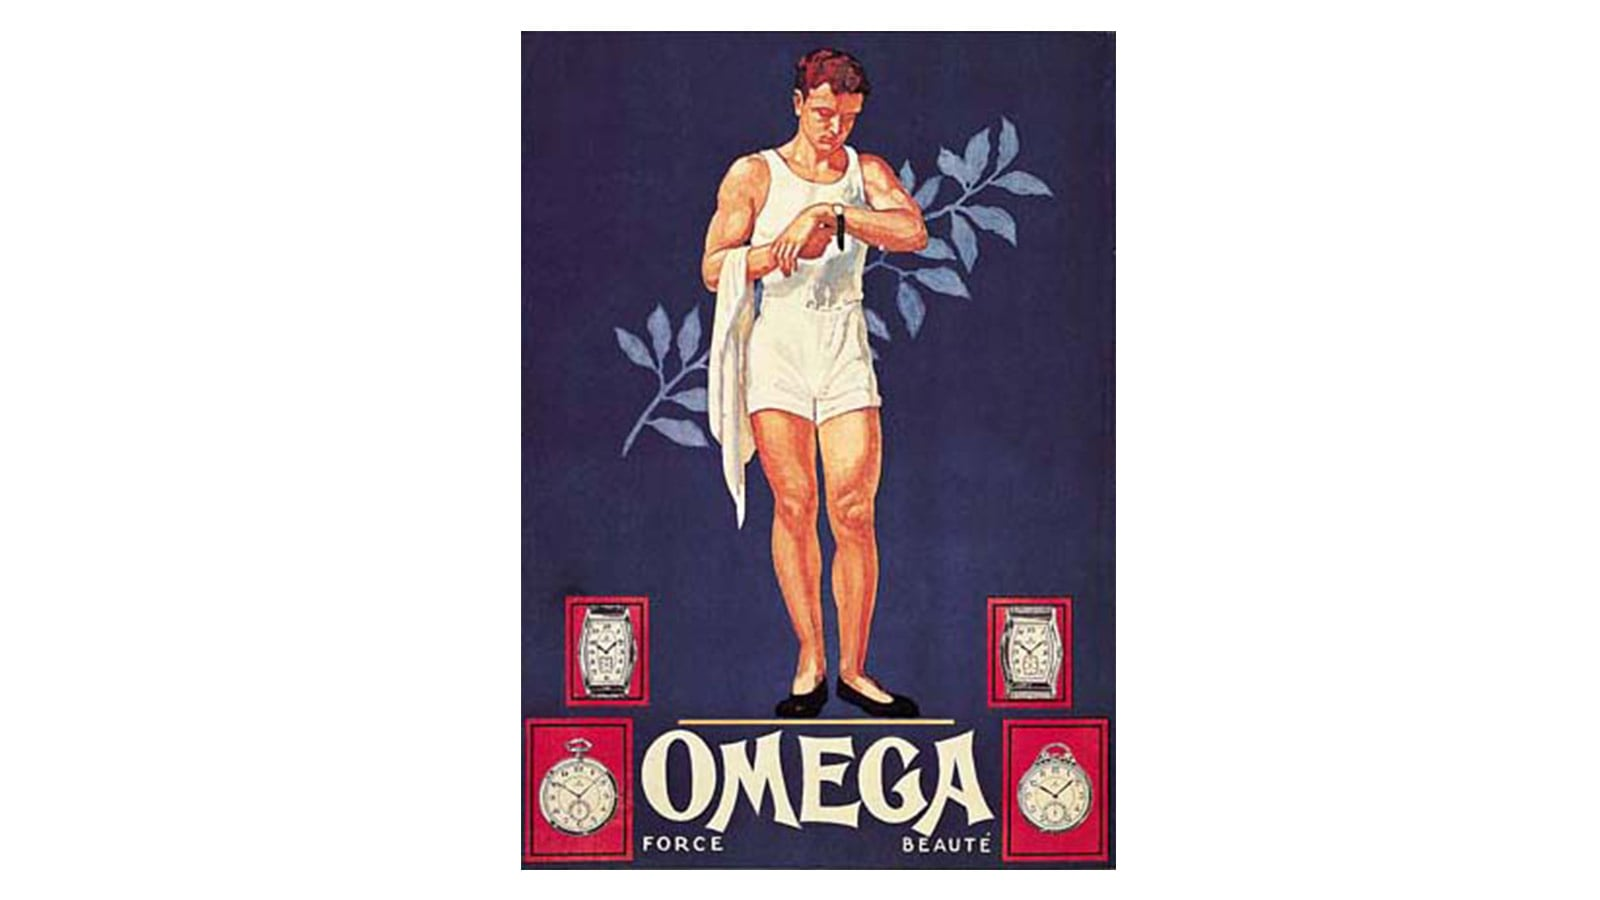 Olympic Games : a race proudly won by OMEGA - Slide 1 - 407